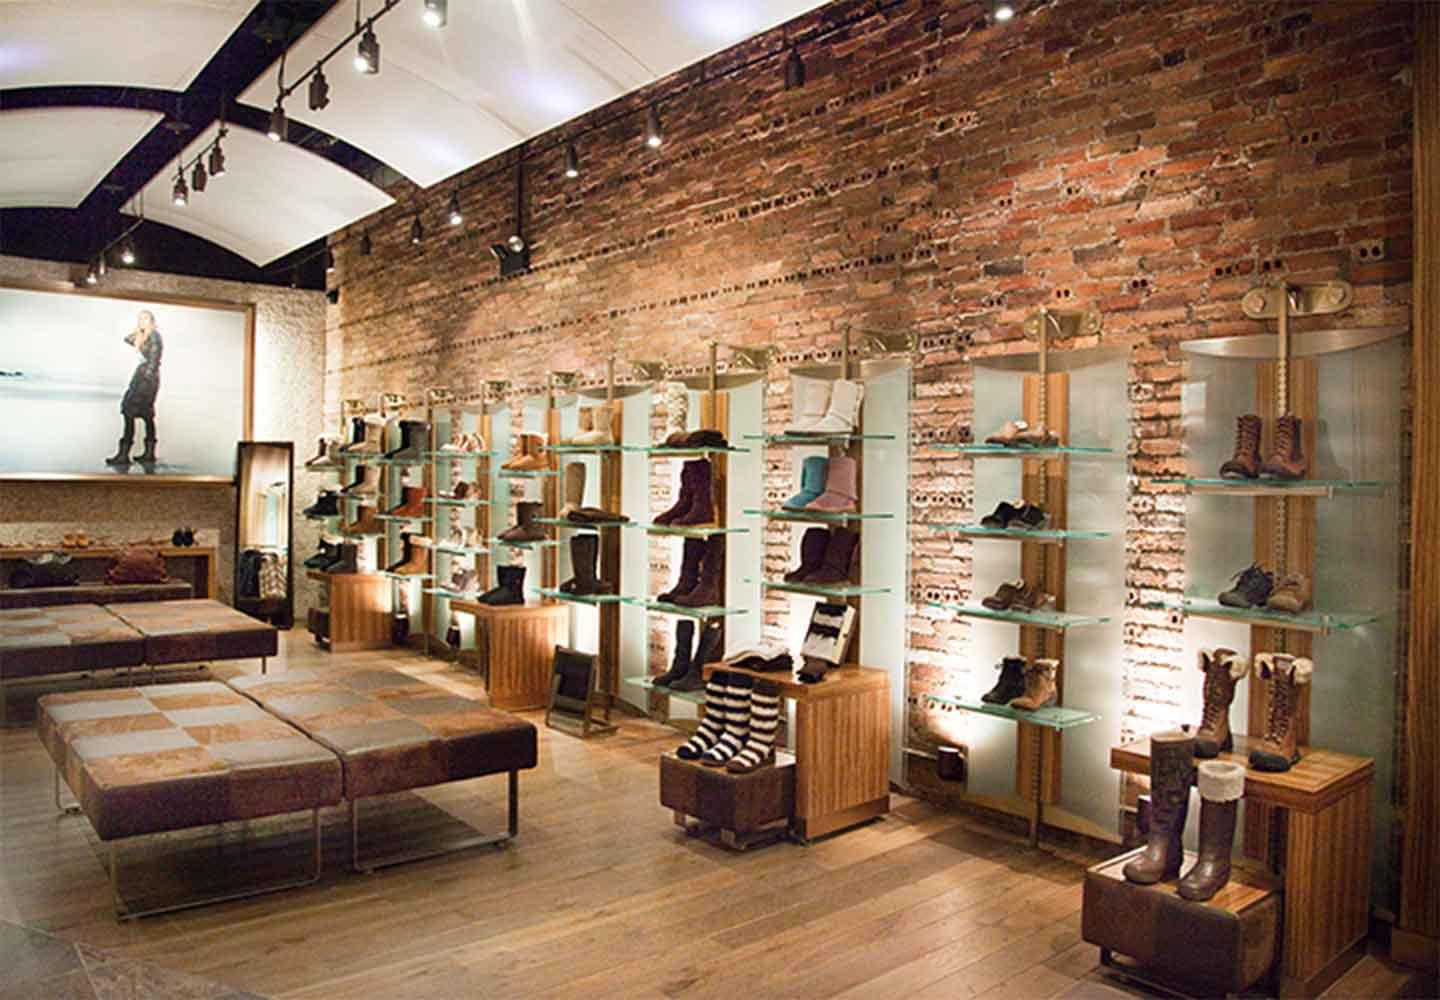 interior of Ugg retail store in Soho